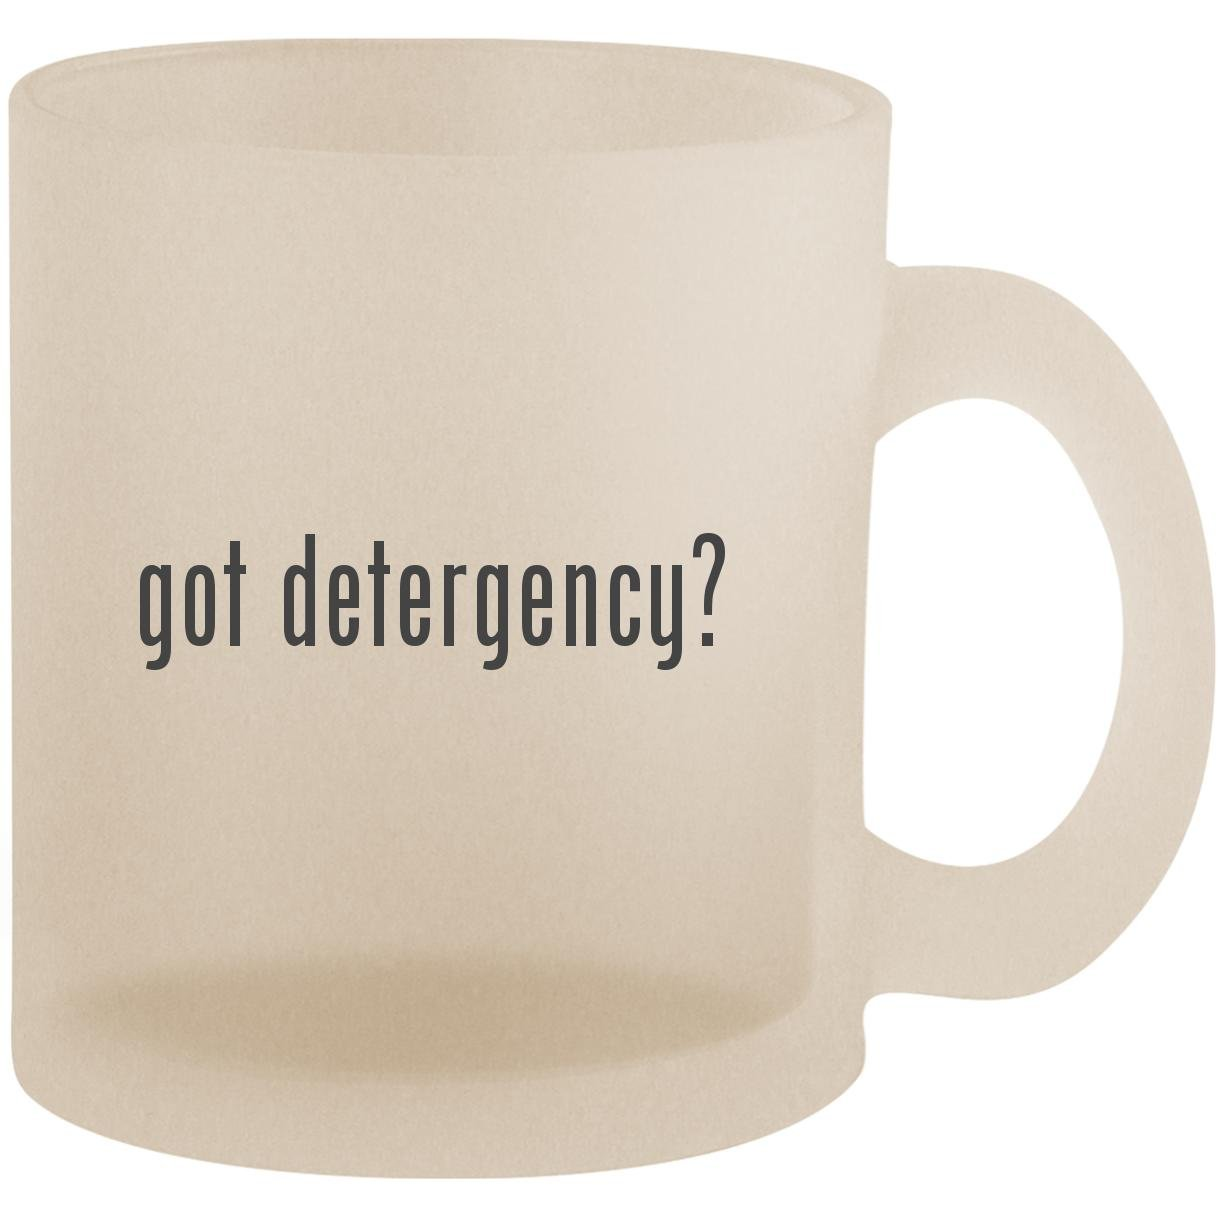 got detergency? - Frosted 10oz Glass Coffee Cup Mug